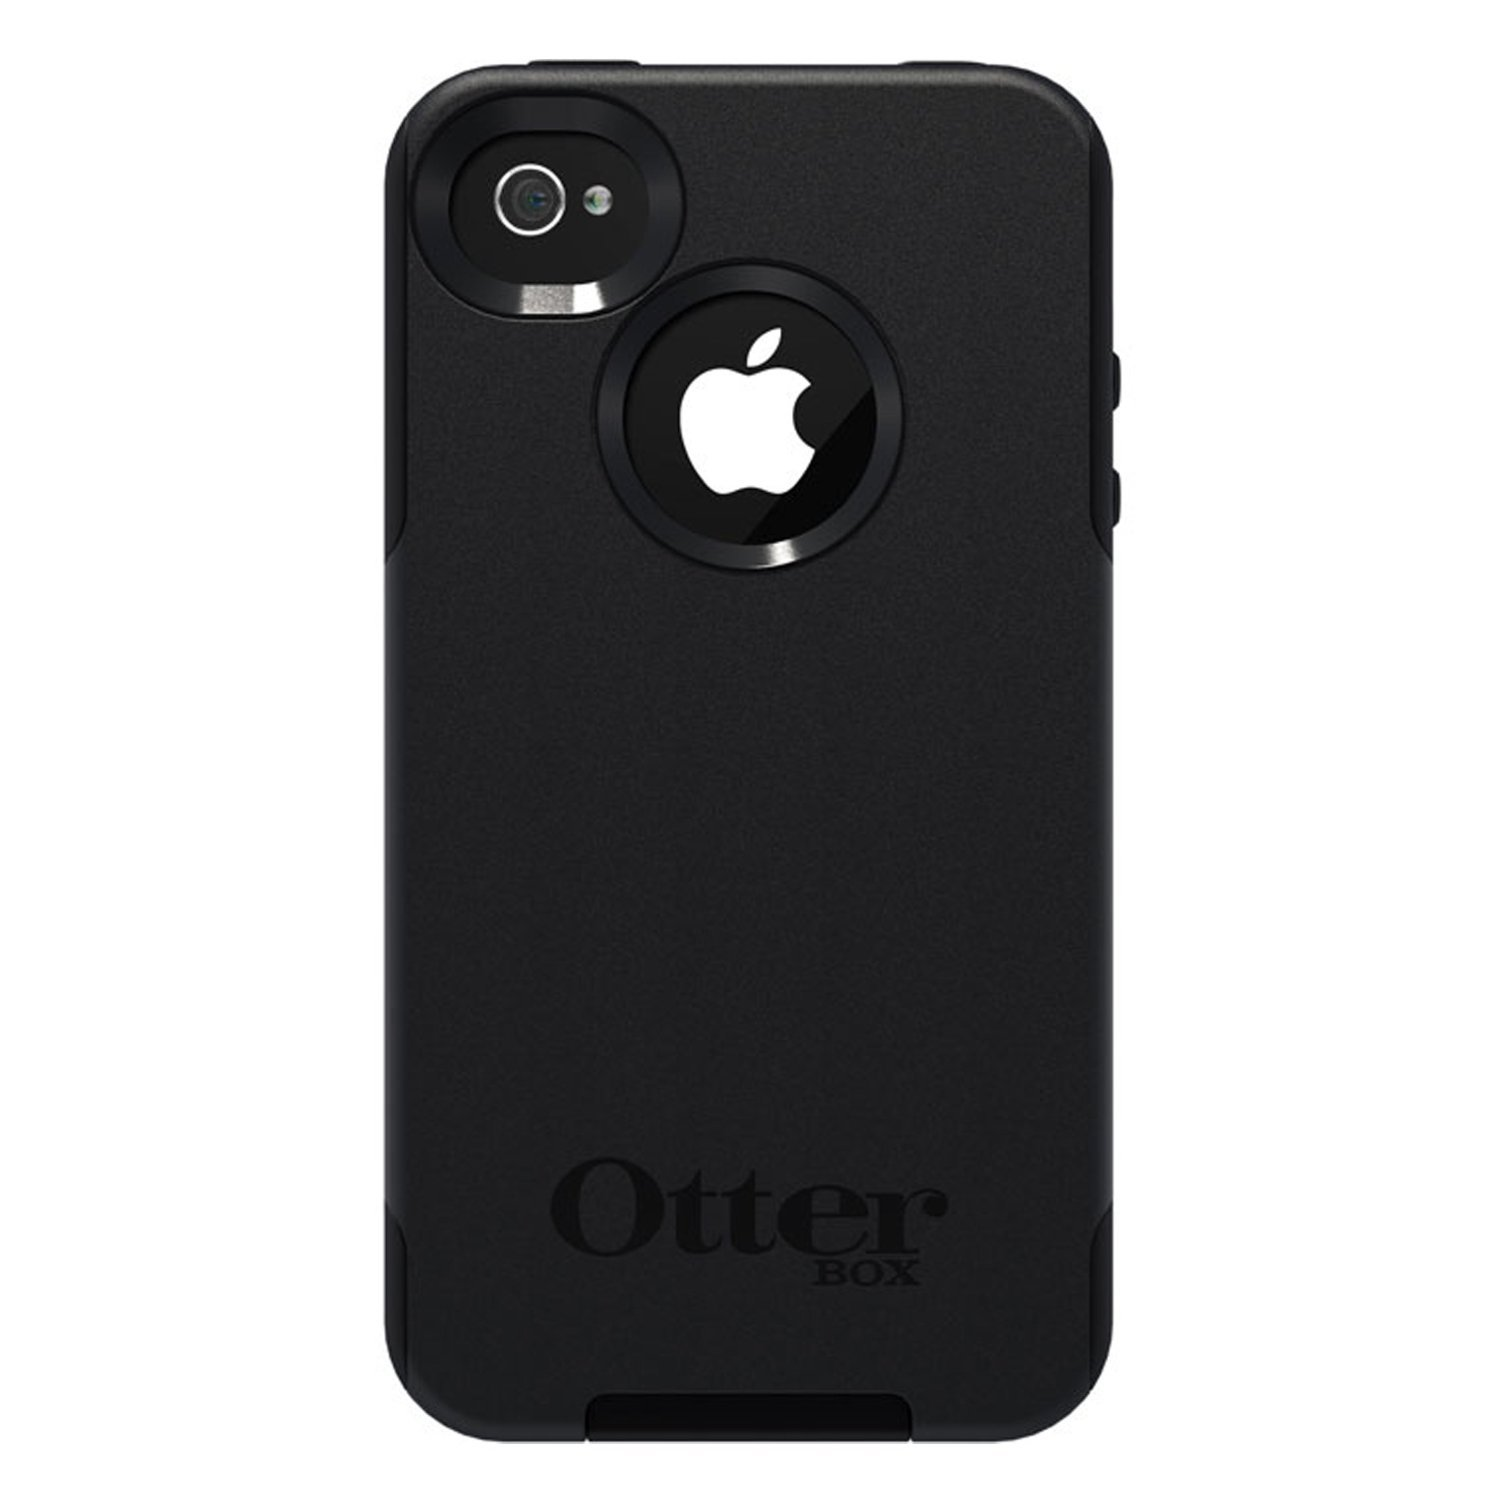 otterbox defender series iphone 4: OtterBox Commuter Series for iPhone ...